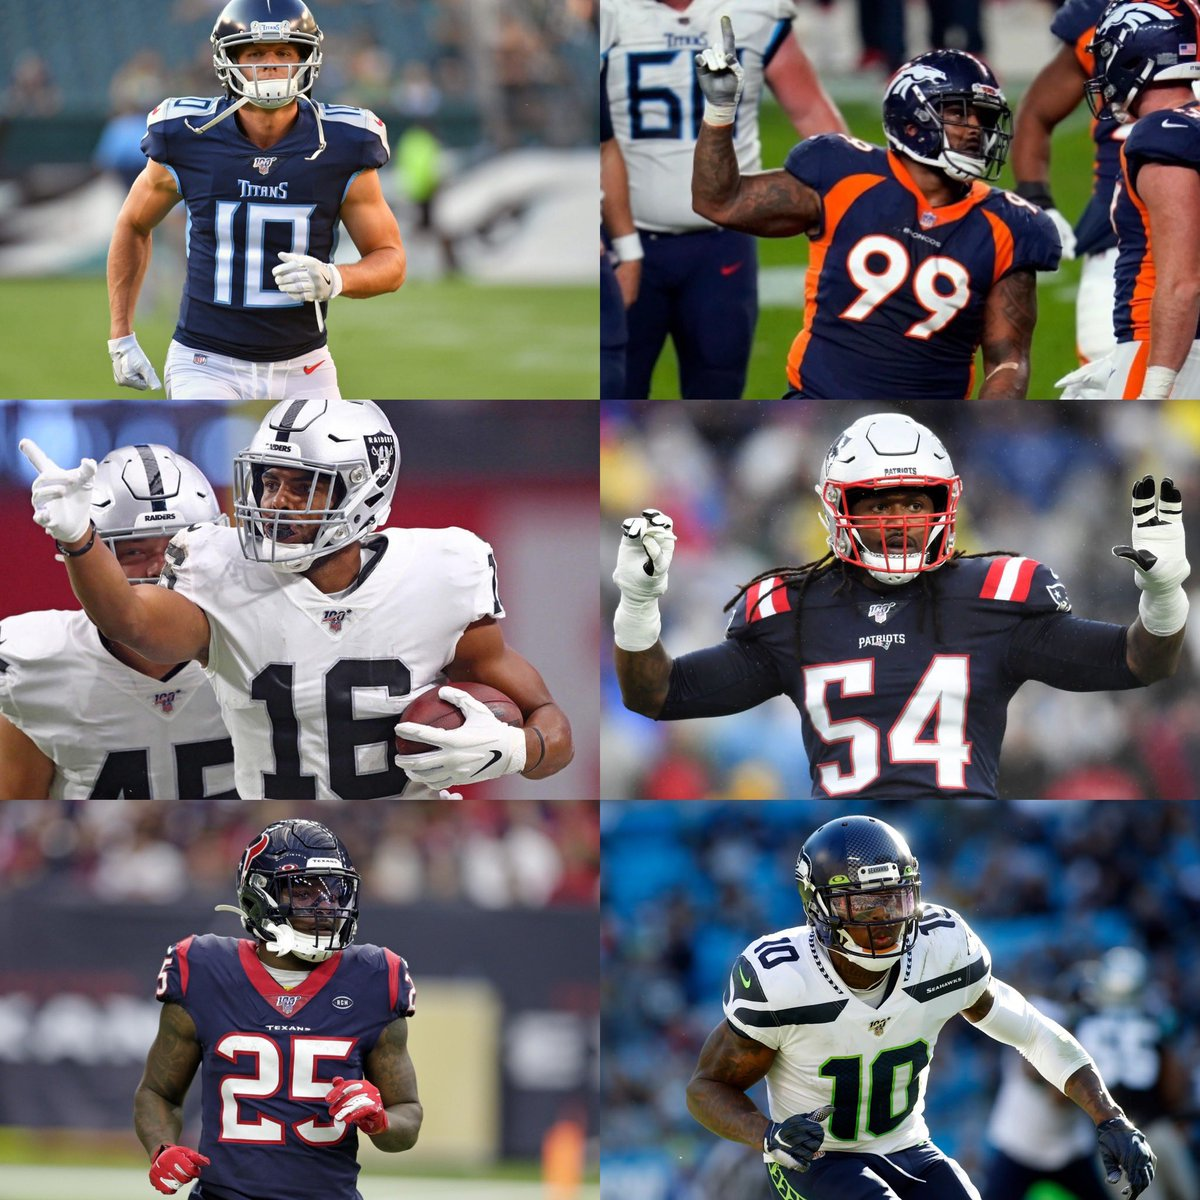 Around the #NFL:   -Titans cut WR Adam Humphries  -Broncos cut DT Jurrell Casey  -Raiders cut WR Tyrell Williams  -Patriots LB Dont'a Hightower, S Patrick Chung, and OT Marcus Cannon plan to return in 2021  -Texans cut RB Duke Johnsonn and C Nick Martin